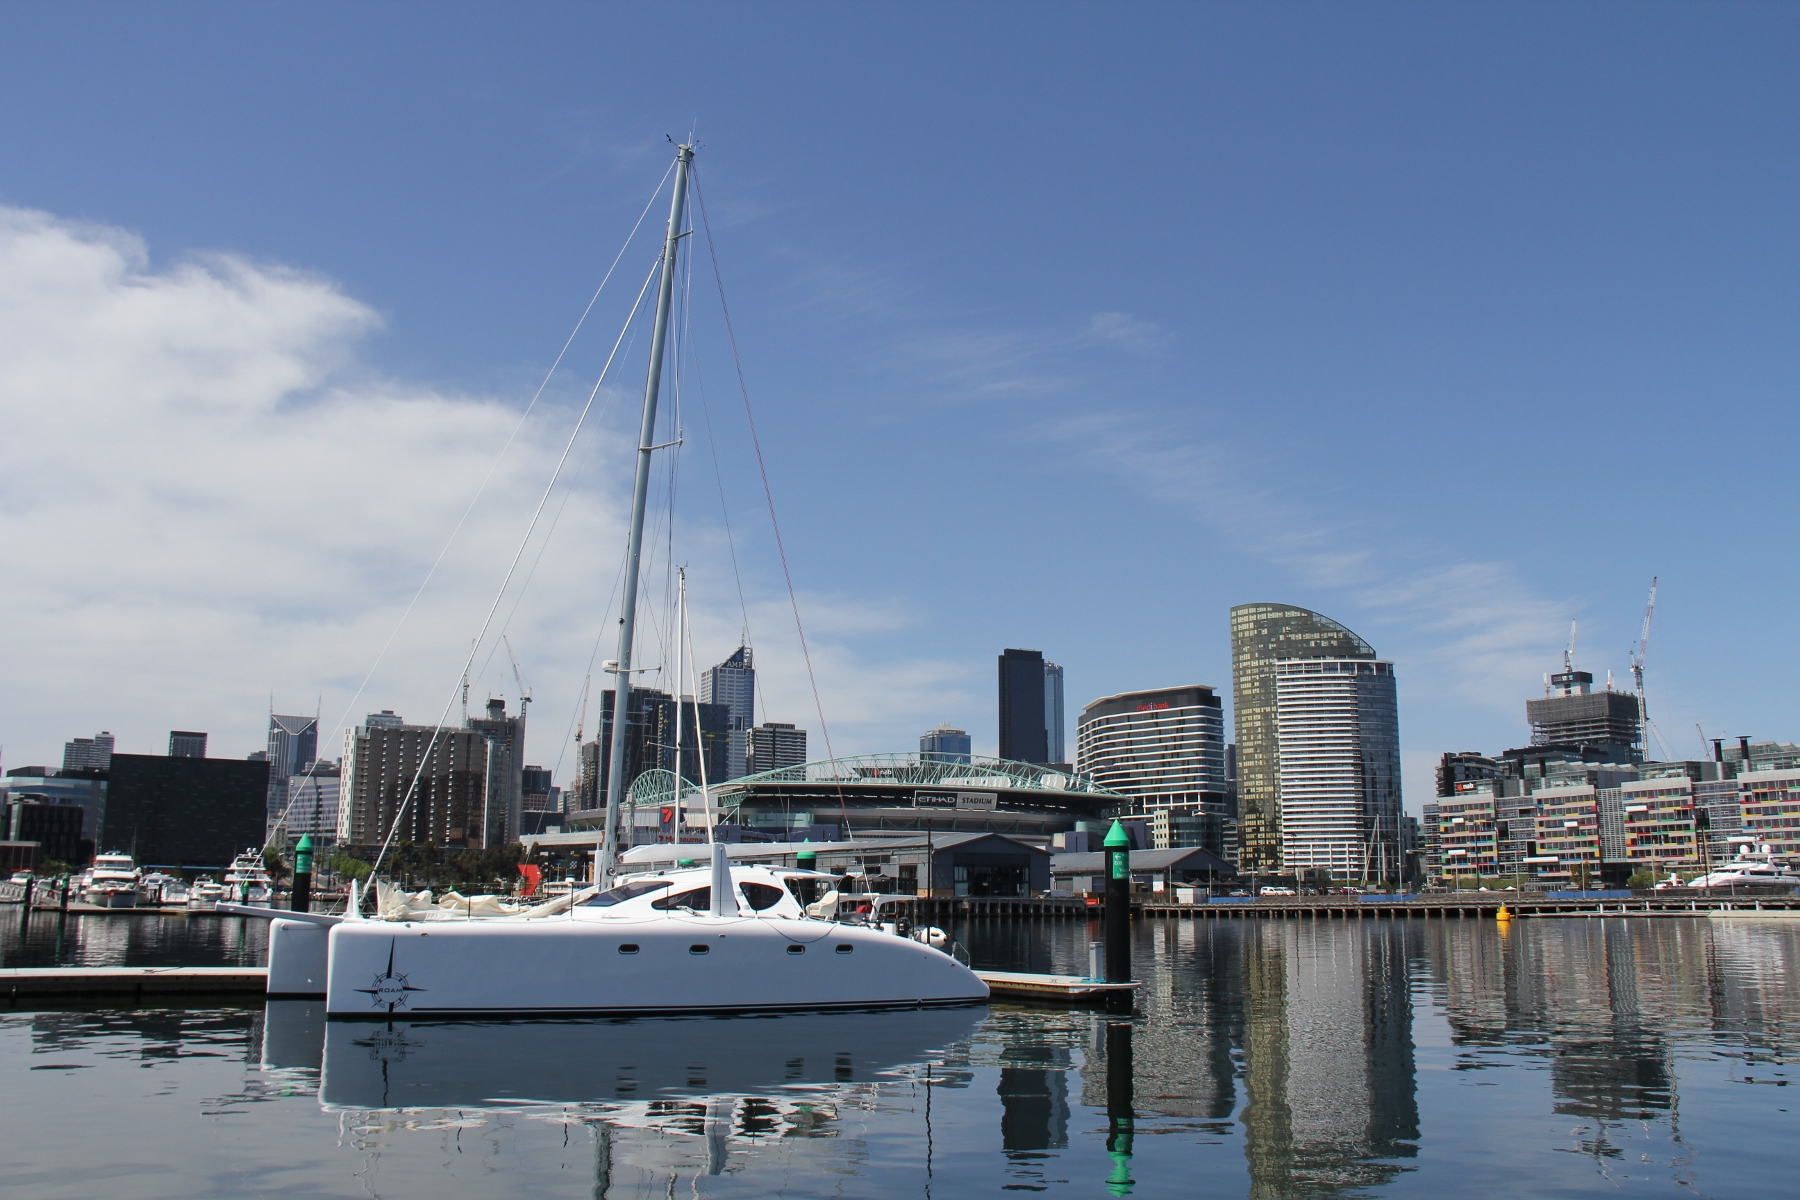 ROAM in the big smoke. Once the rig was on we spent the weekend in Docklands at Melbourne City Marina settling into the cruising lifestyle and catching up with friends.